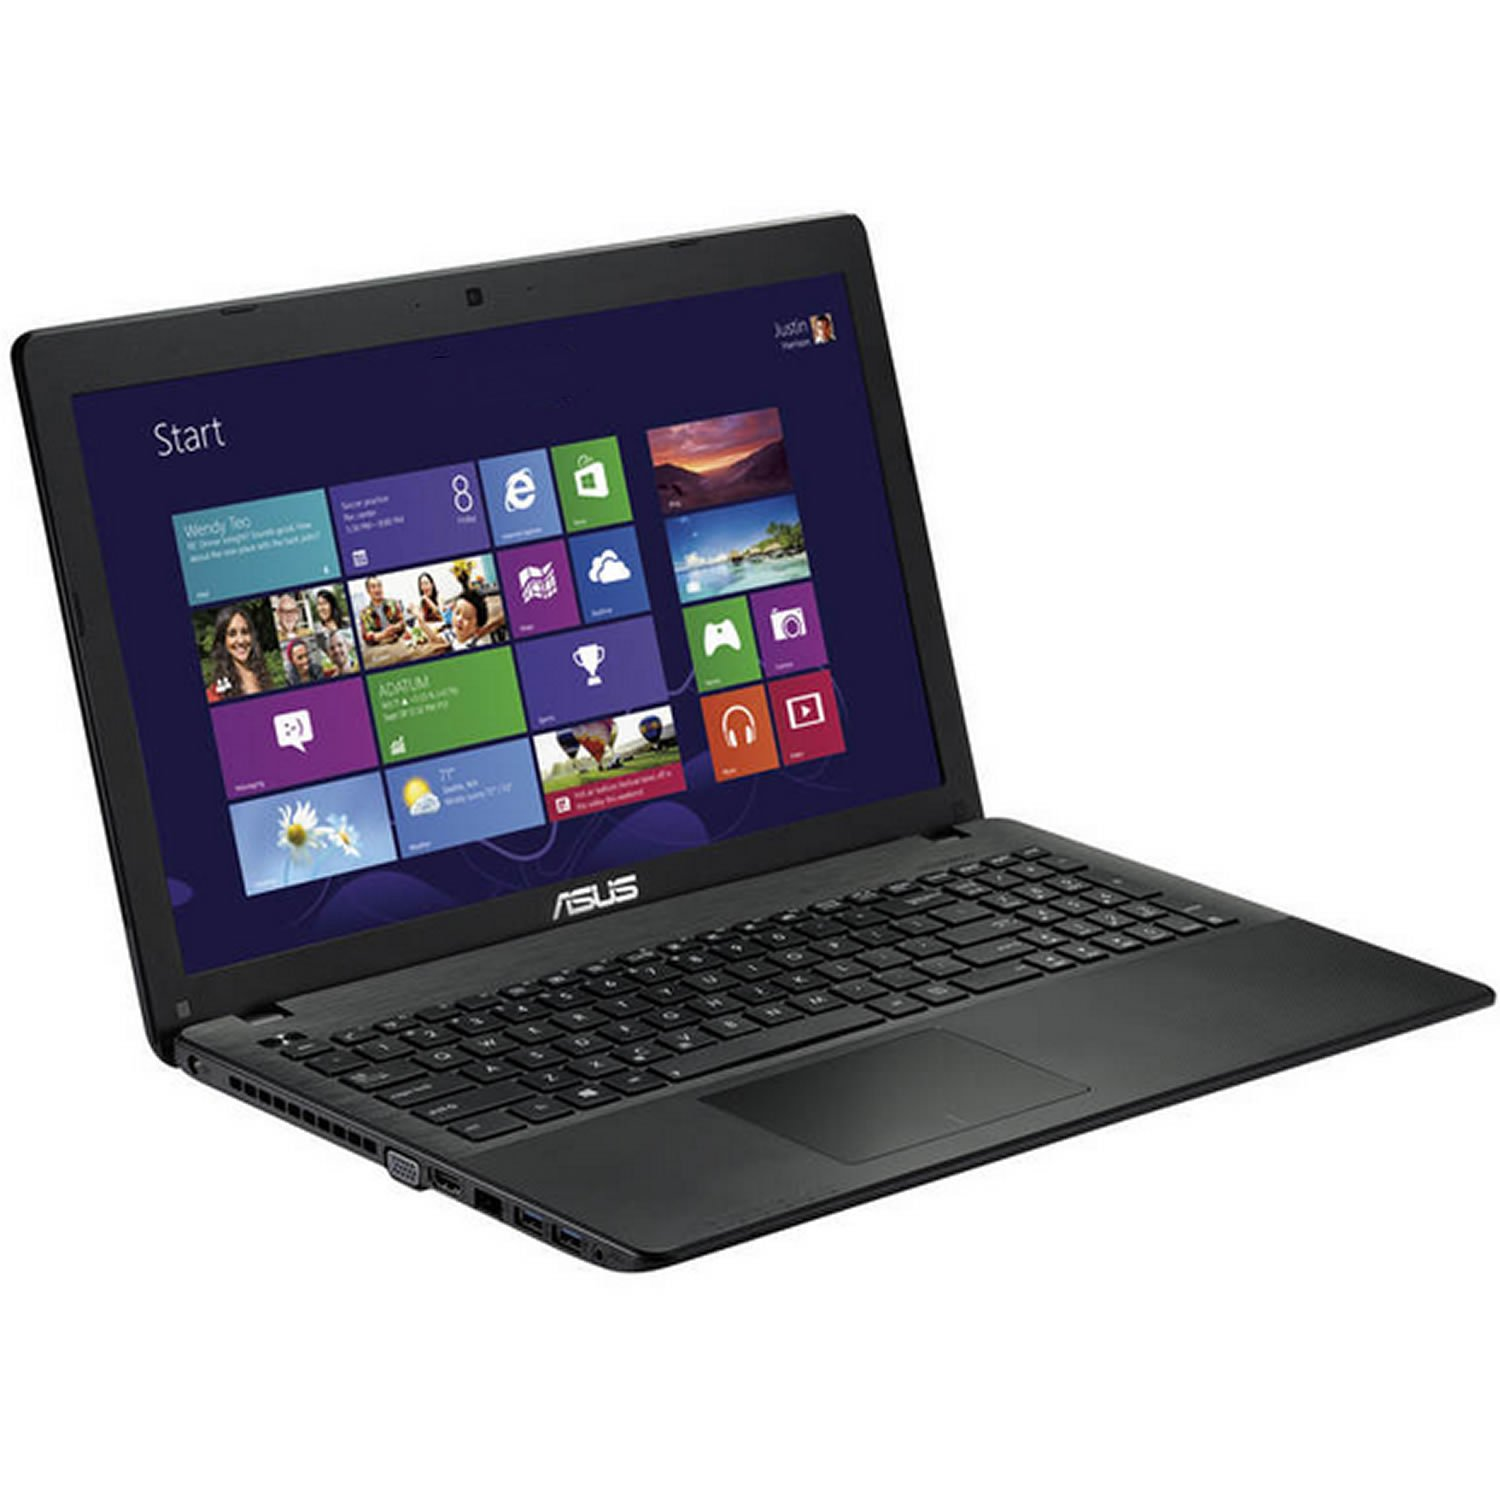 "Asus X552CL 15.6"" Intel Core i5 Laptop"